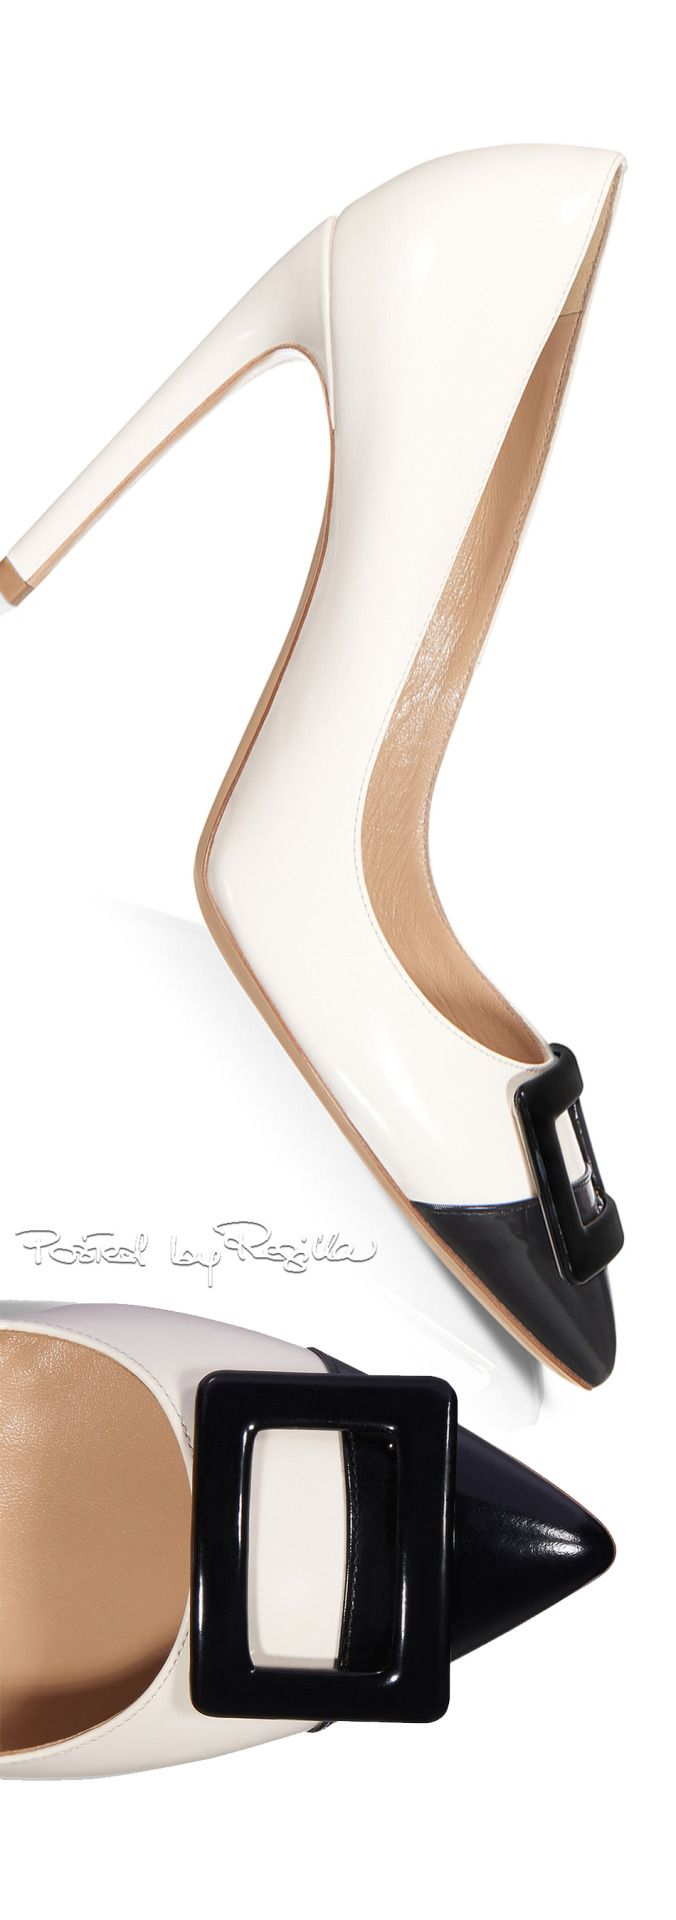 Roger Vivier ~ Spring Pumps, Black/White, 2015